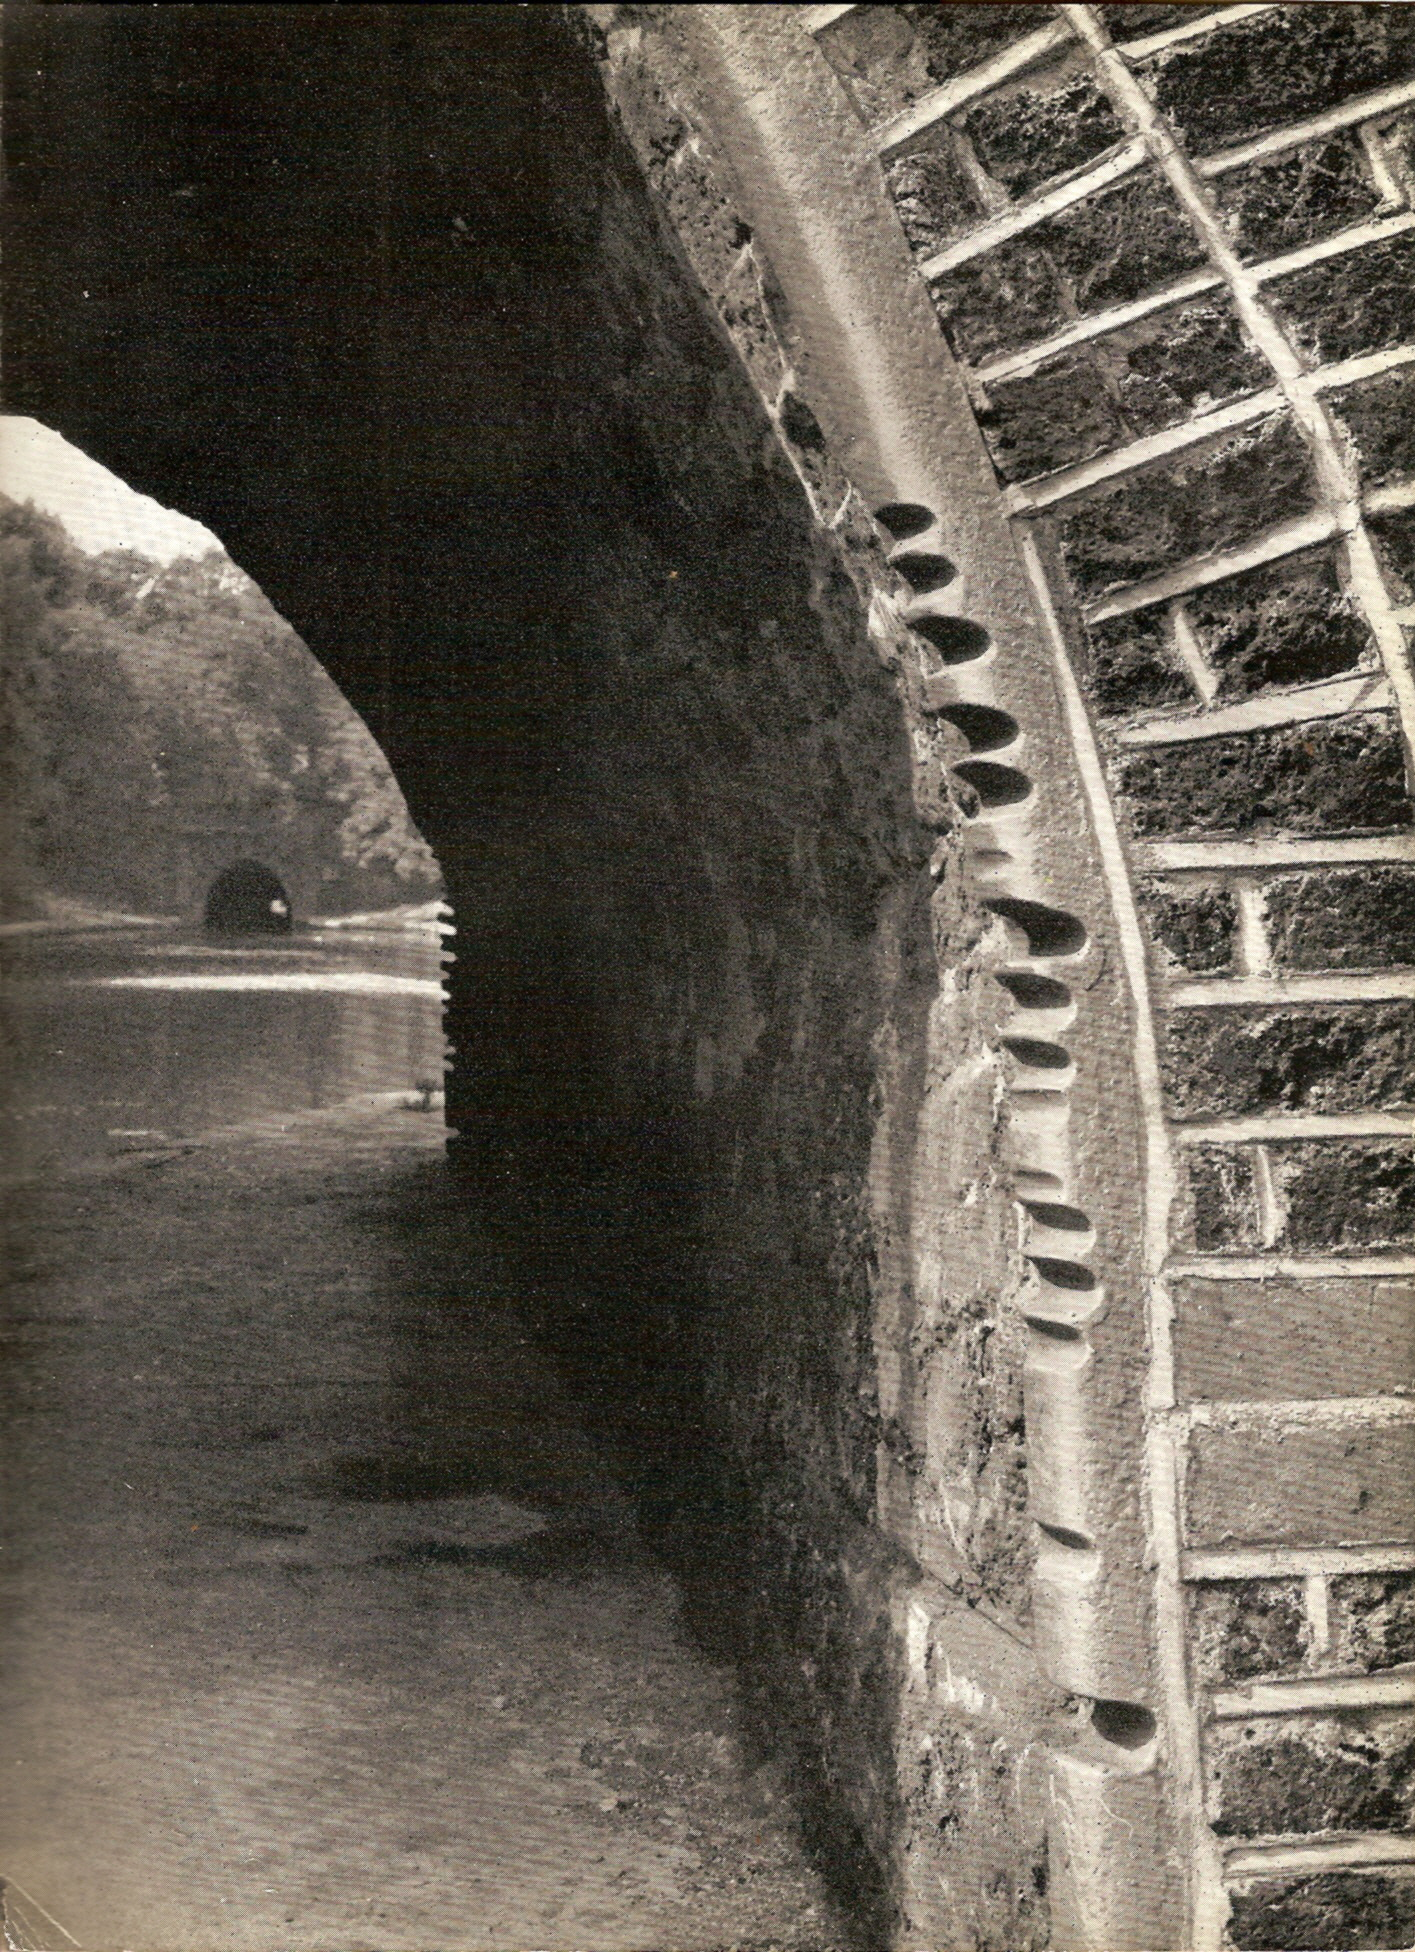 Looking towards Islington Tunnel